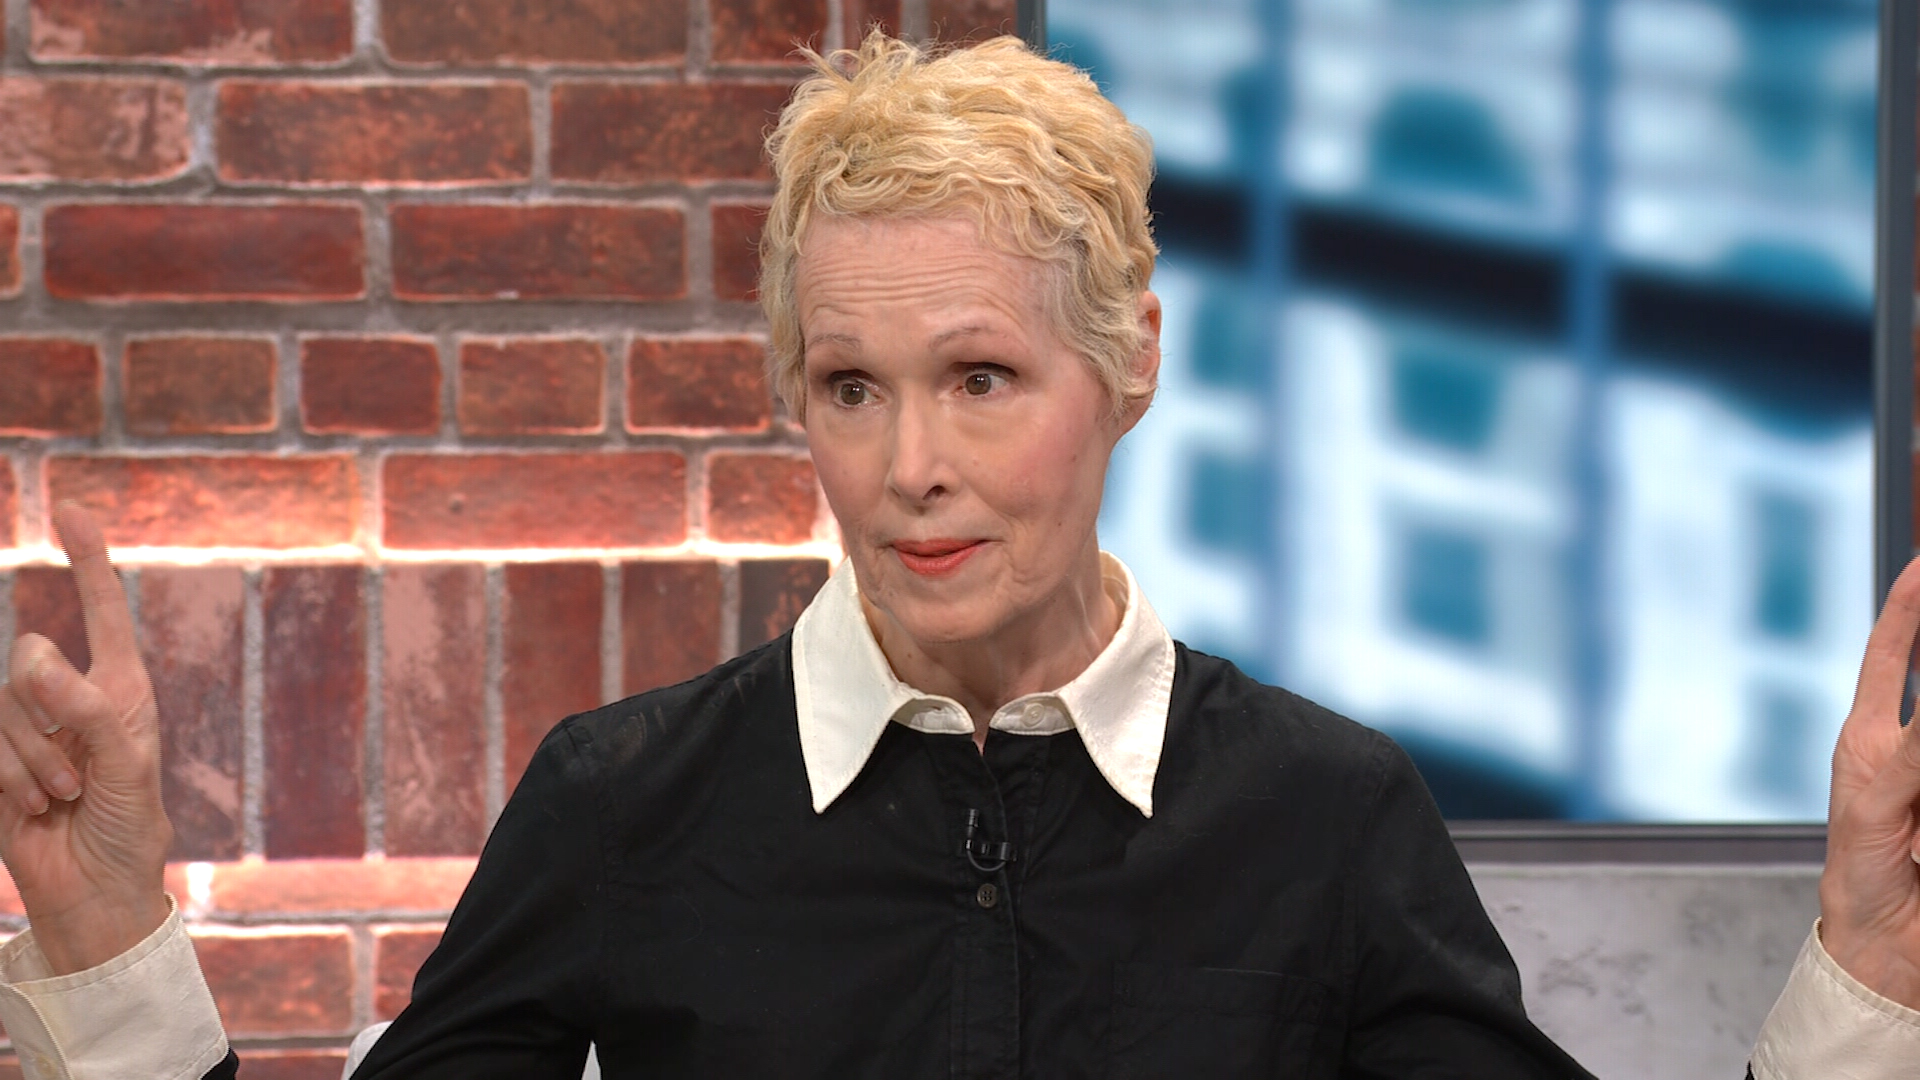 E. Jean Carroll says Elle declined to renew her contract for her column because of Trump's comments